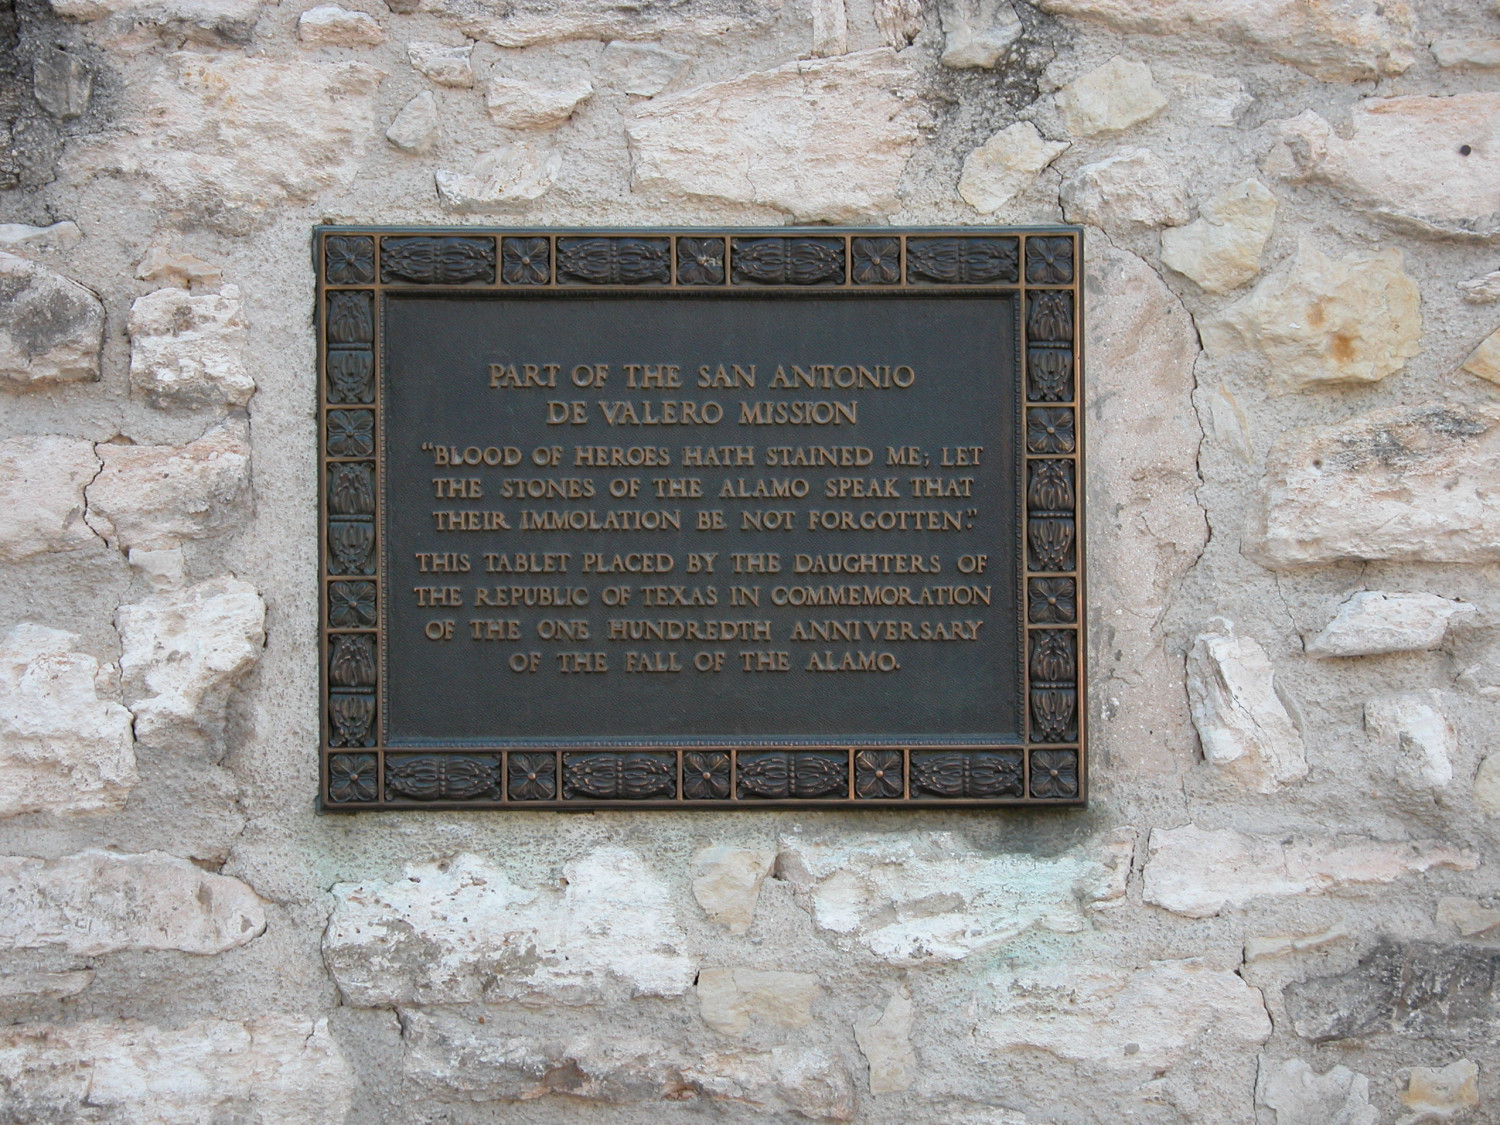 Alamo plaque dedicated by the Daughters of the Republic of Texas                                                                                                      [Sequence #]: 1 of 1